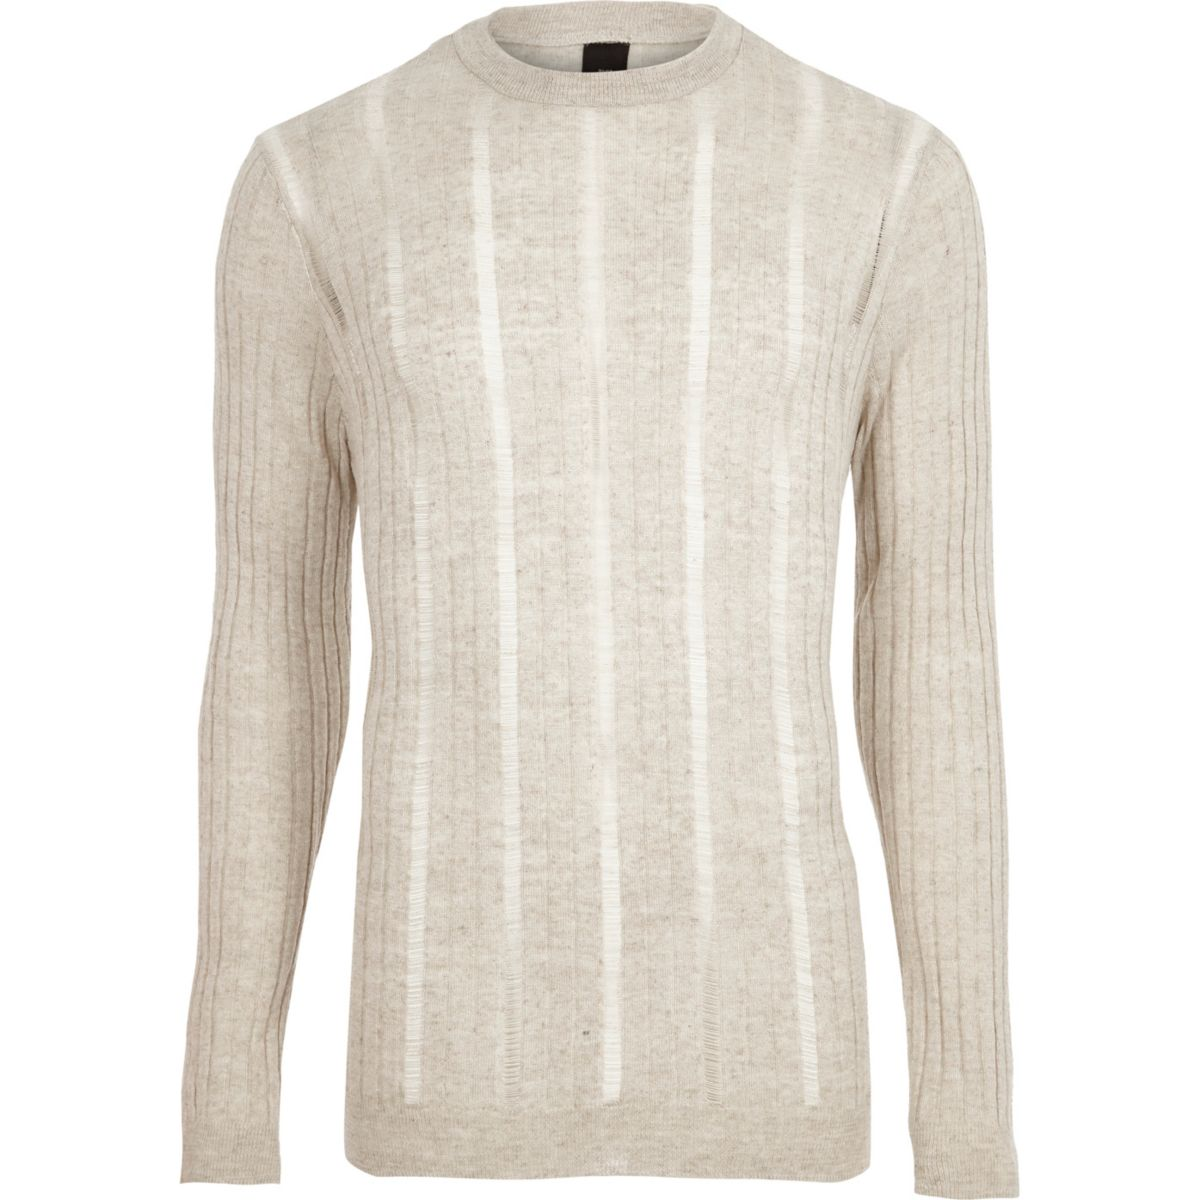 Stone ribbed ladder insert knit sweater